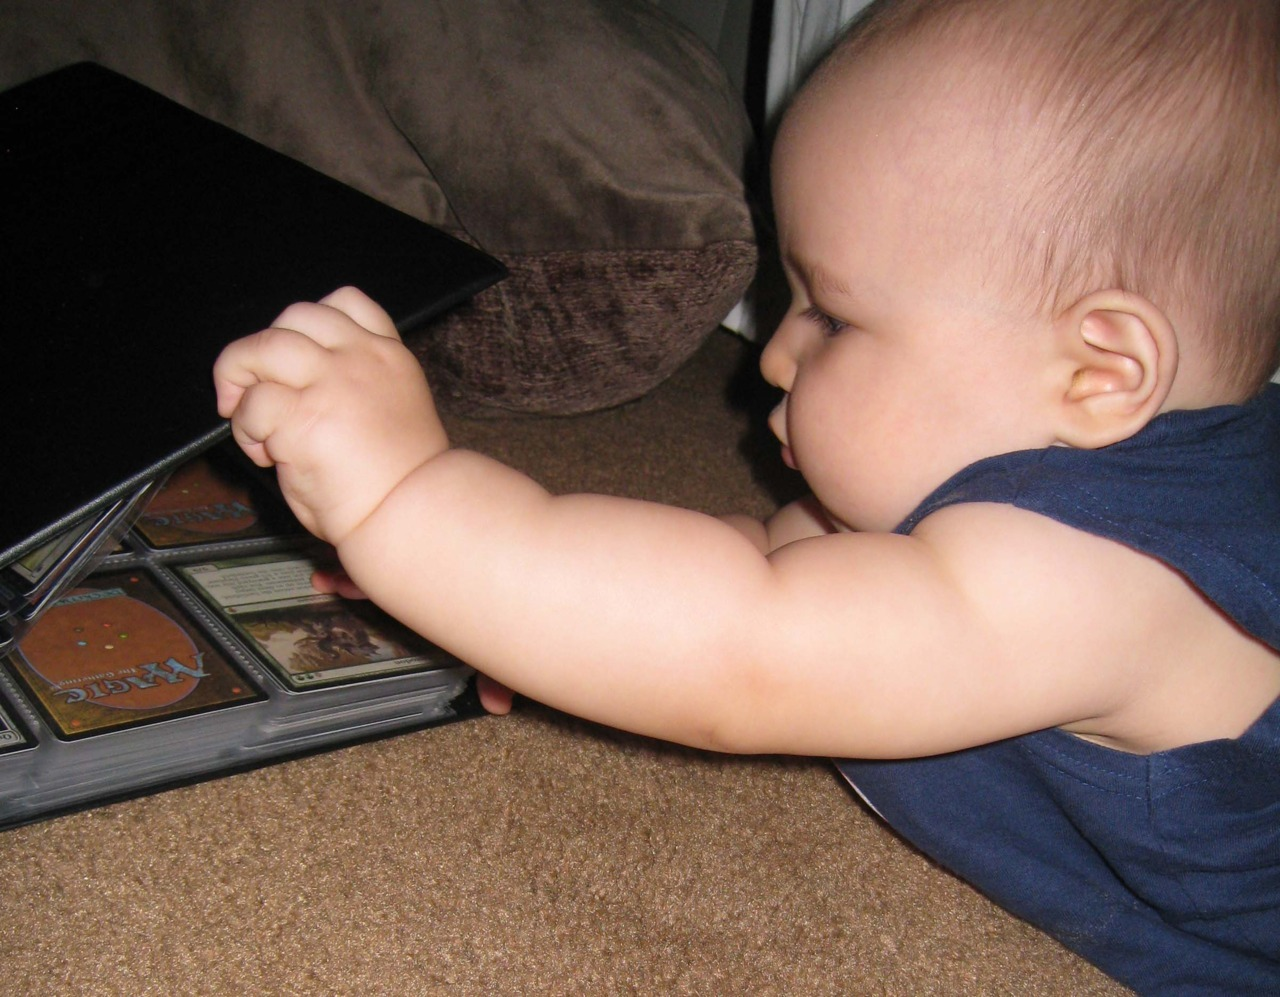 mtgfan:  plnsfrstmtn:  my son, sebastien, browsing rares.  I remember me and my friends let a baby try to choose a color of Magic by shoving one of each basic land in front of him. He tried to eat all of them except for the Island, which he cradled for a bit. =D